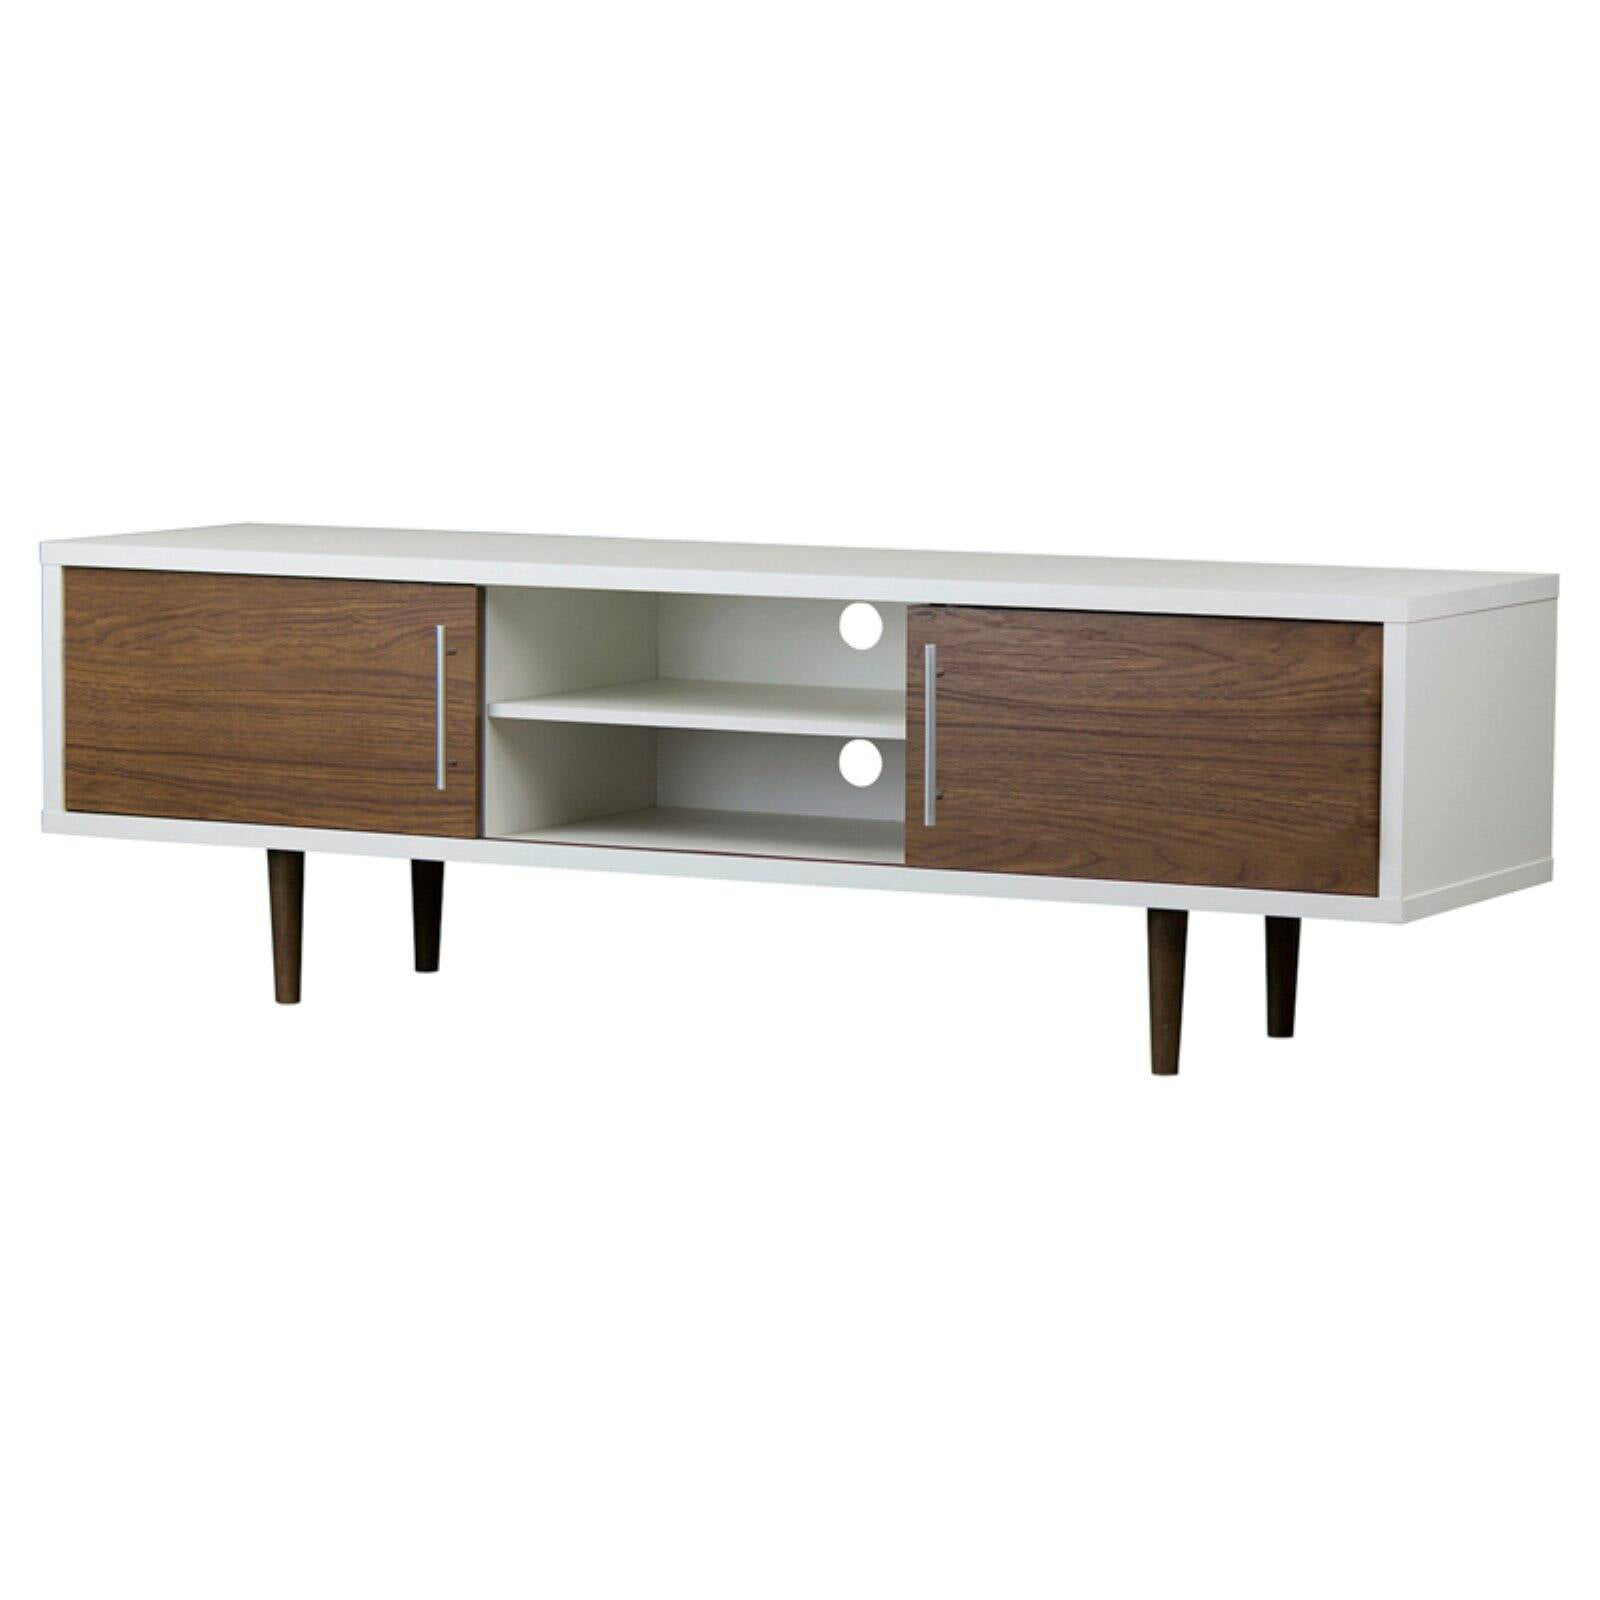 "Gemini Wood Contemporary TV Stand Walnut/White 66"" - Baxton Studio"